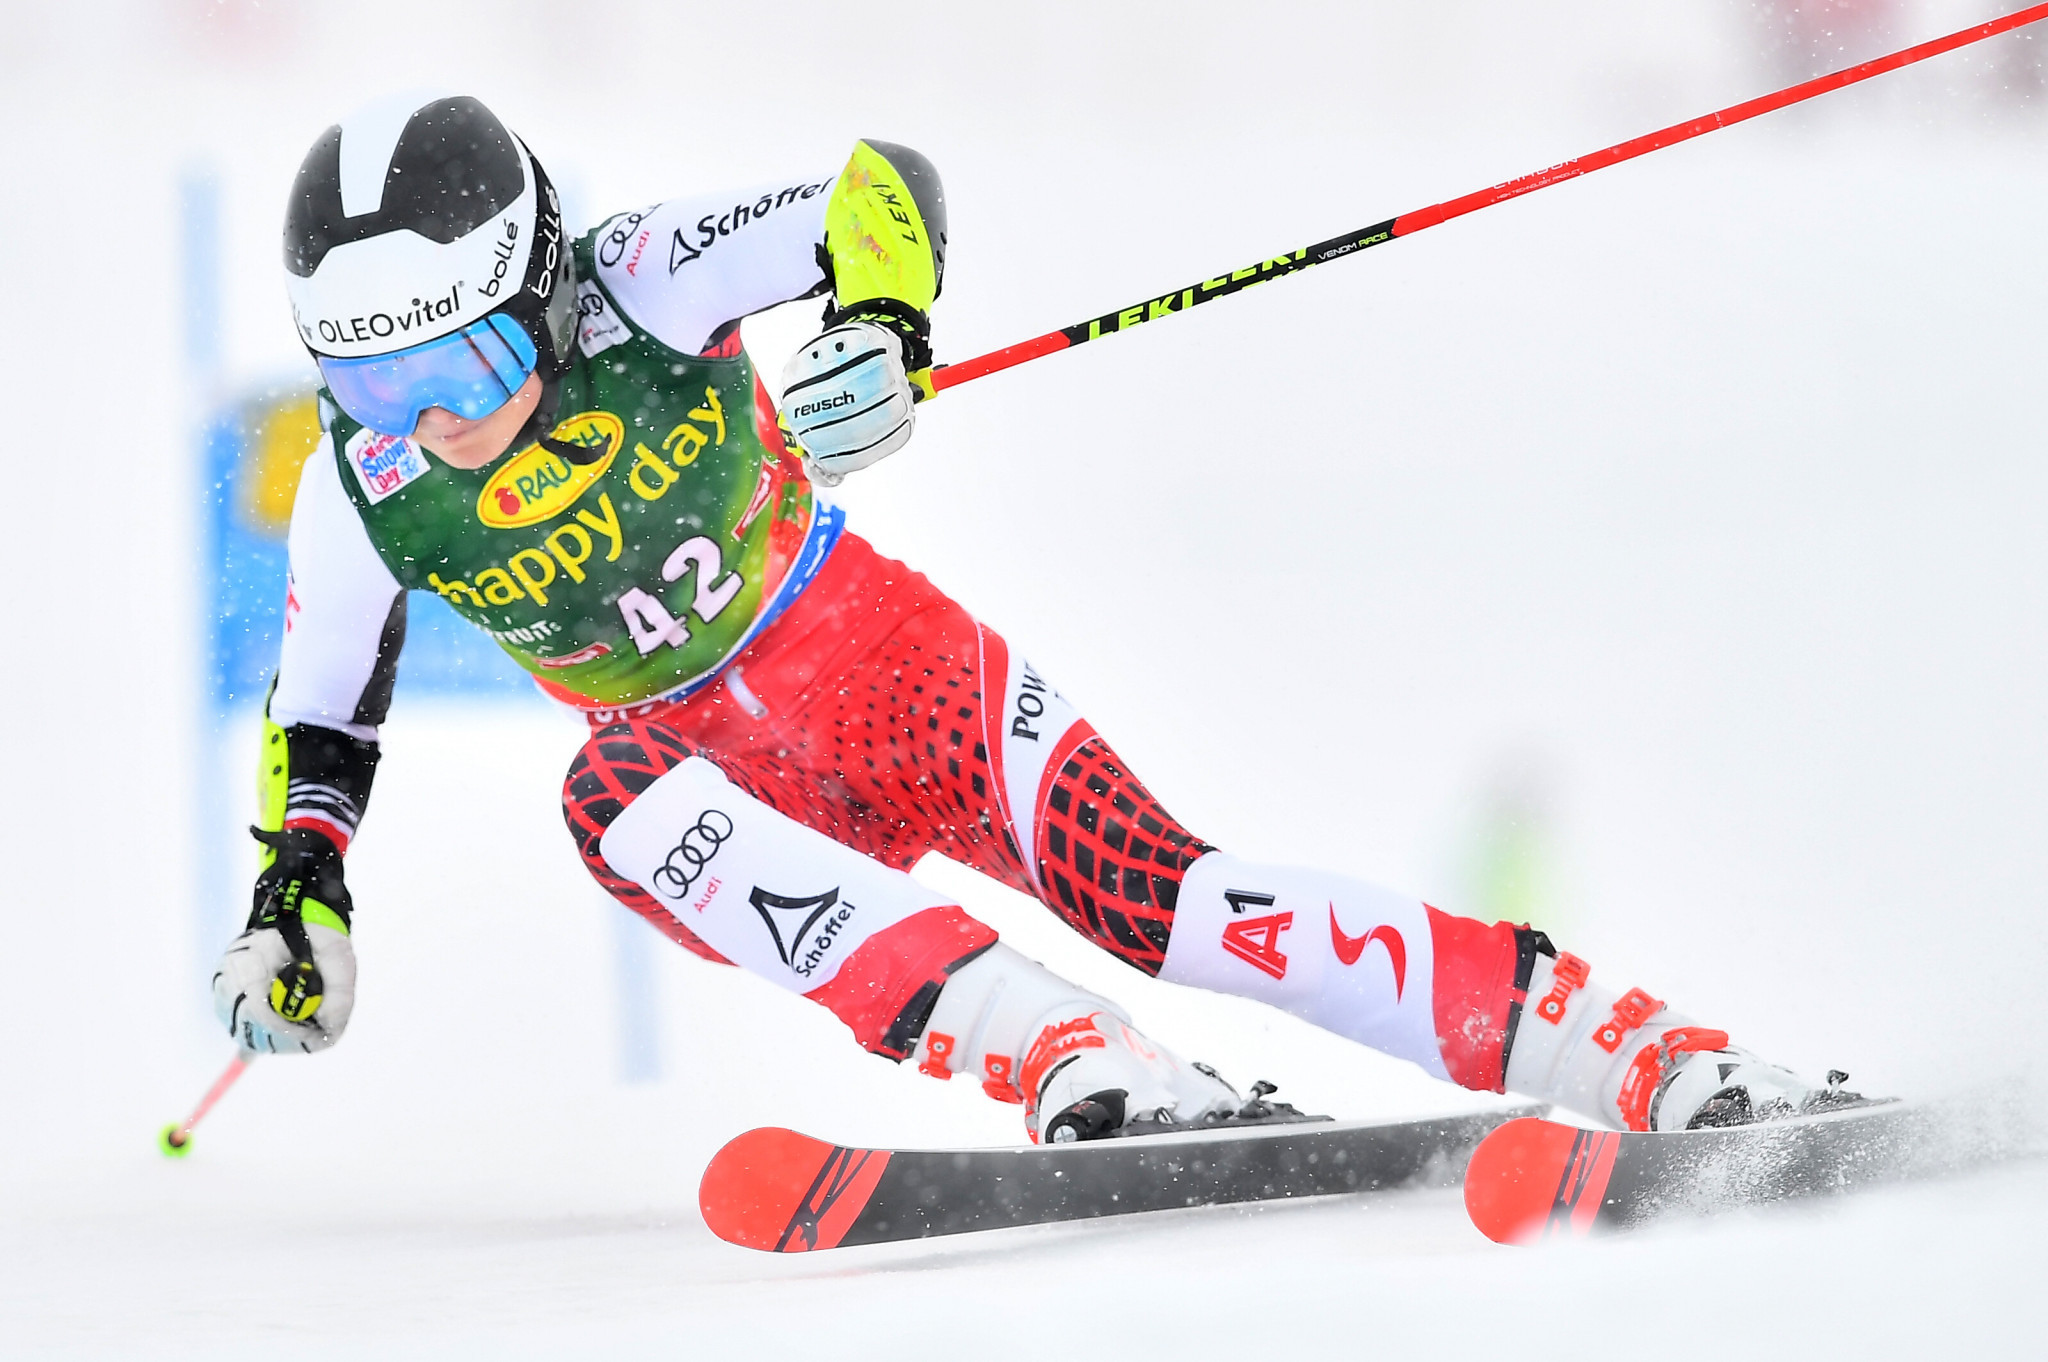 Austria's Julia Scheib won silver in the super-G just behind Hannah Saethereng ©Getty Images